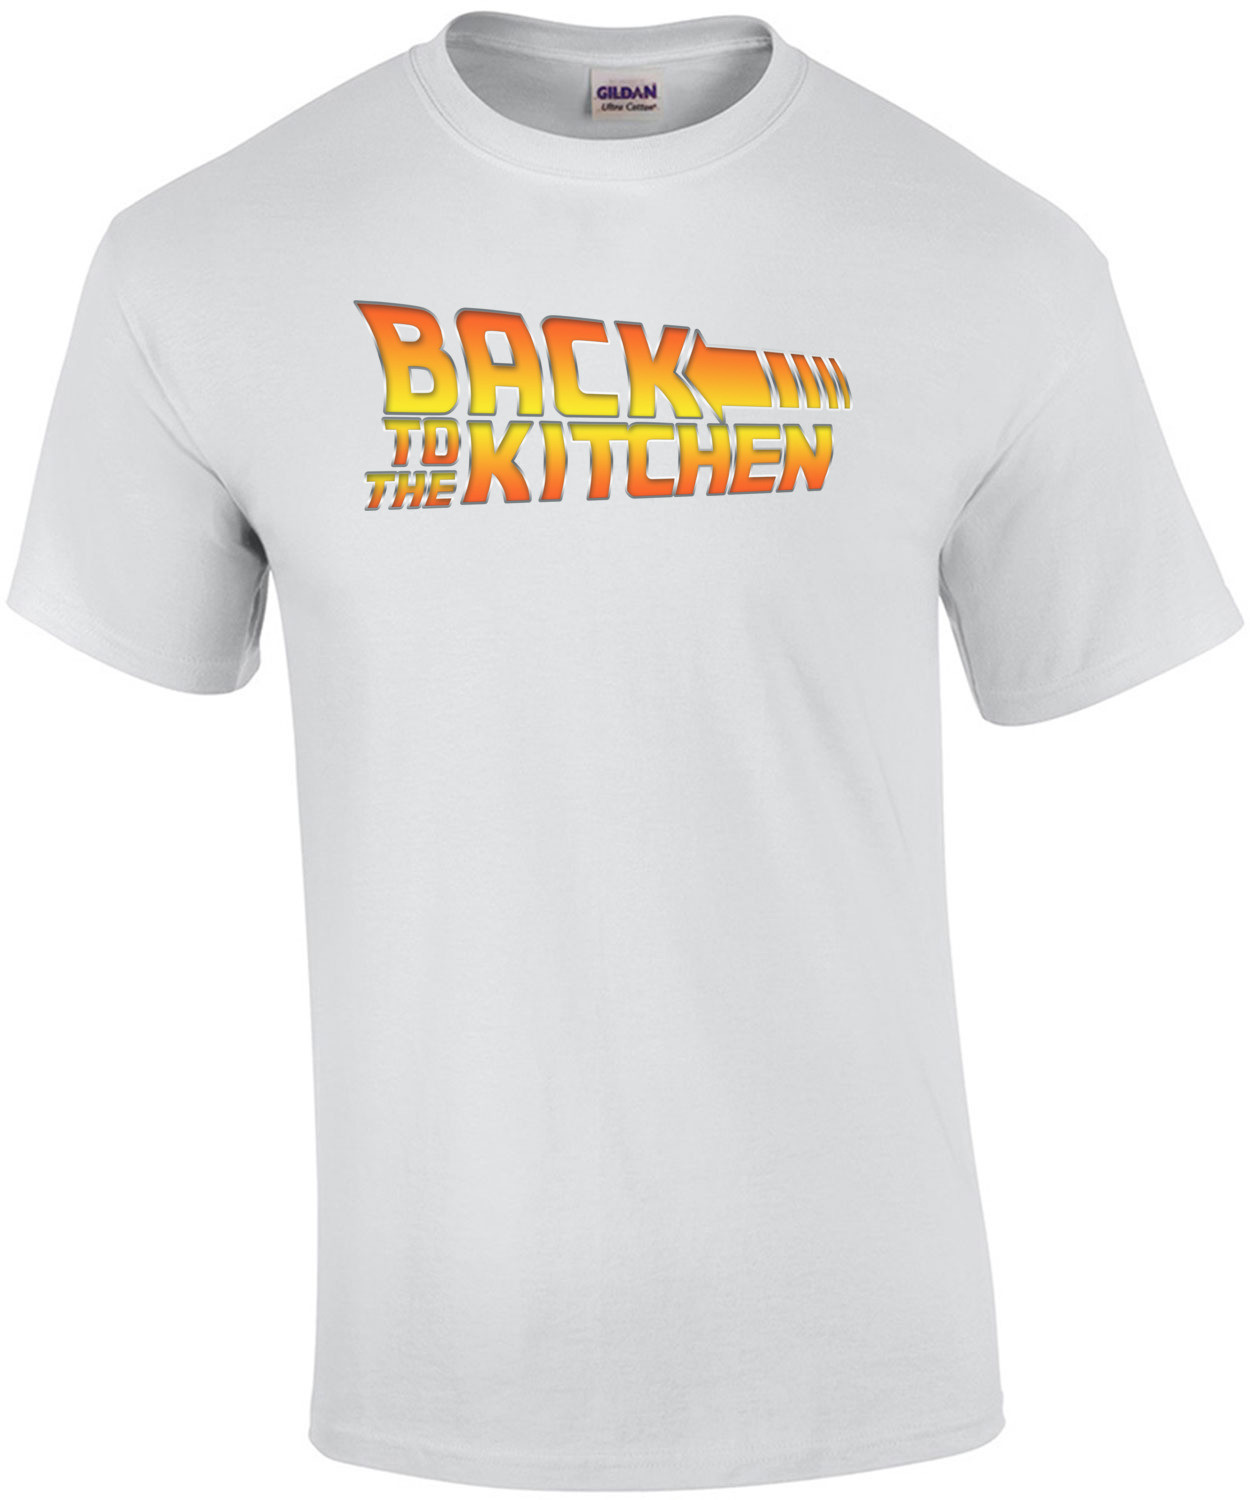 Back To the Kitchen - Back to the future parody t-shirt.